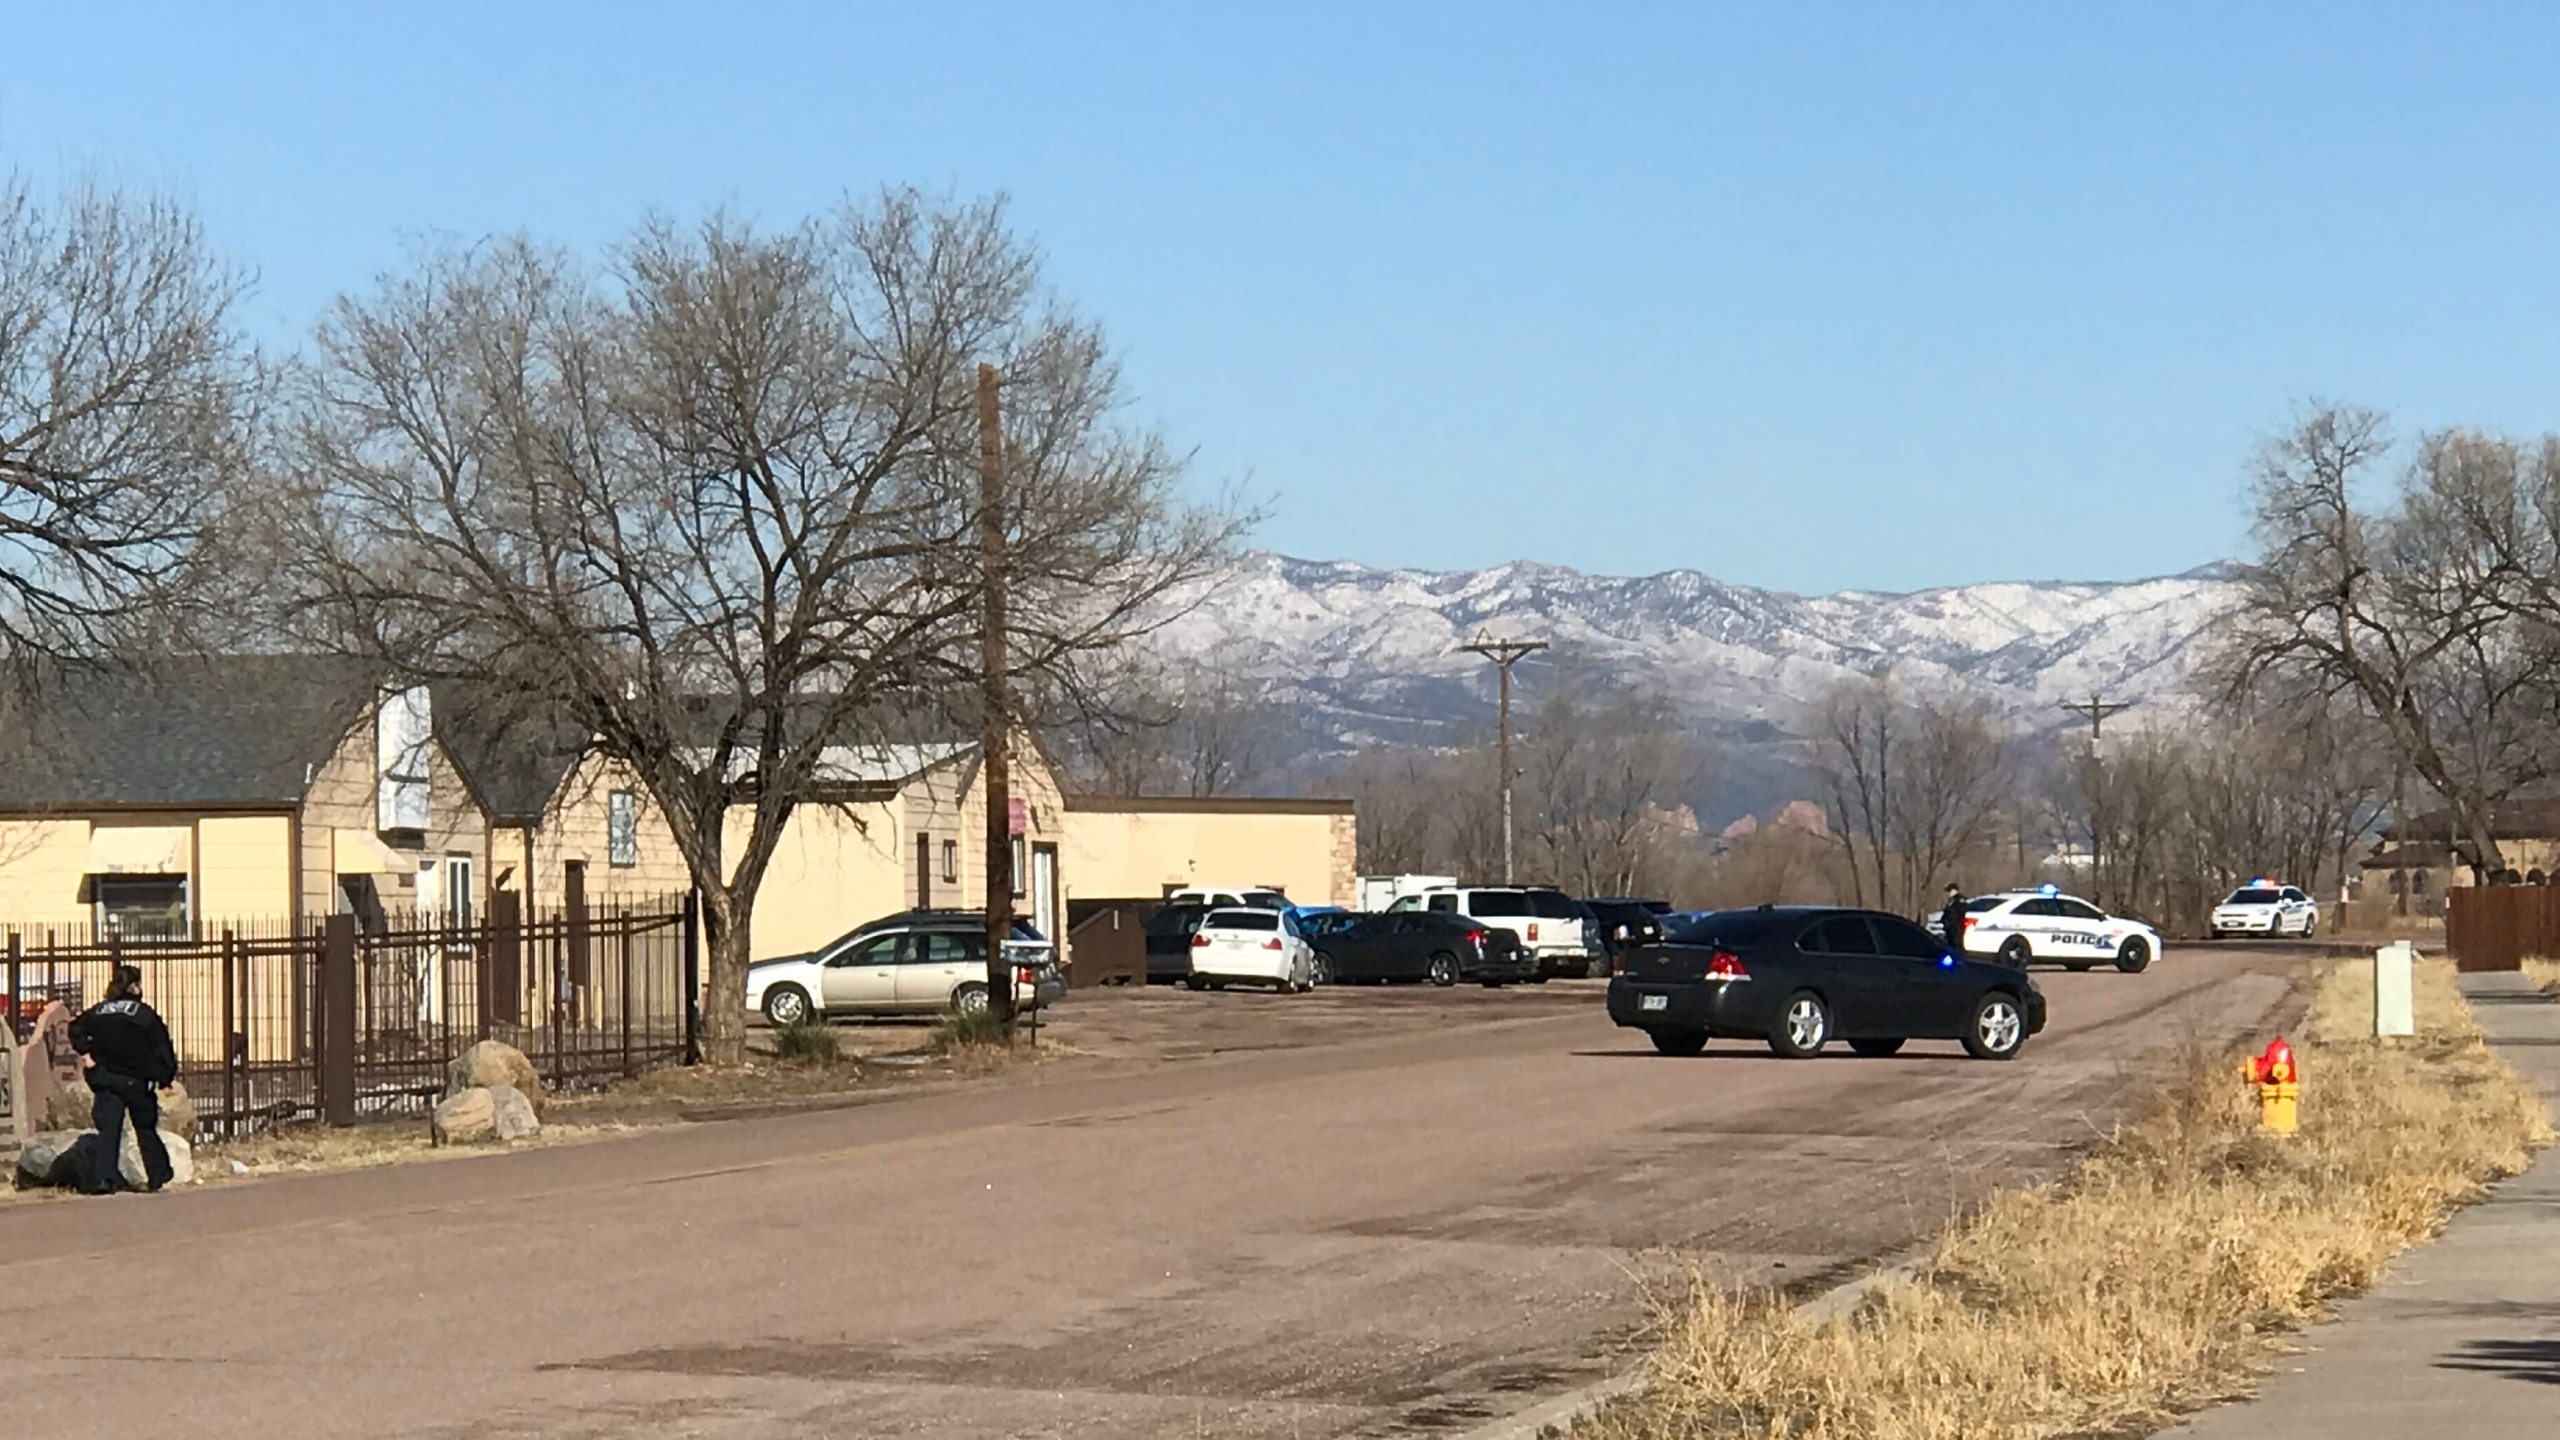 Police on the scene of an investigation off Highway 85/87 Friday morning. / Shawn Shanle - FOX21 News